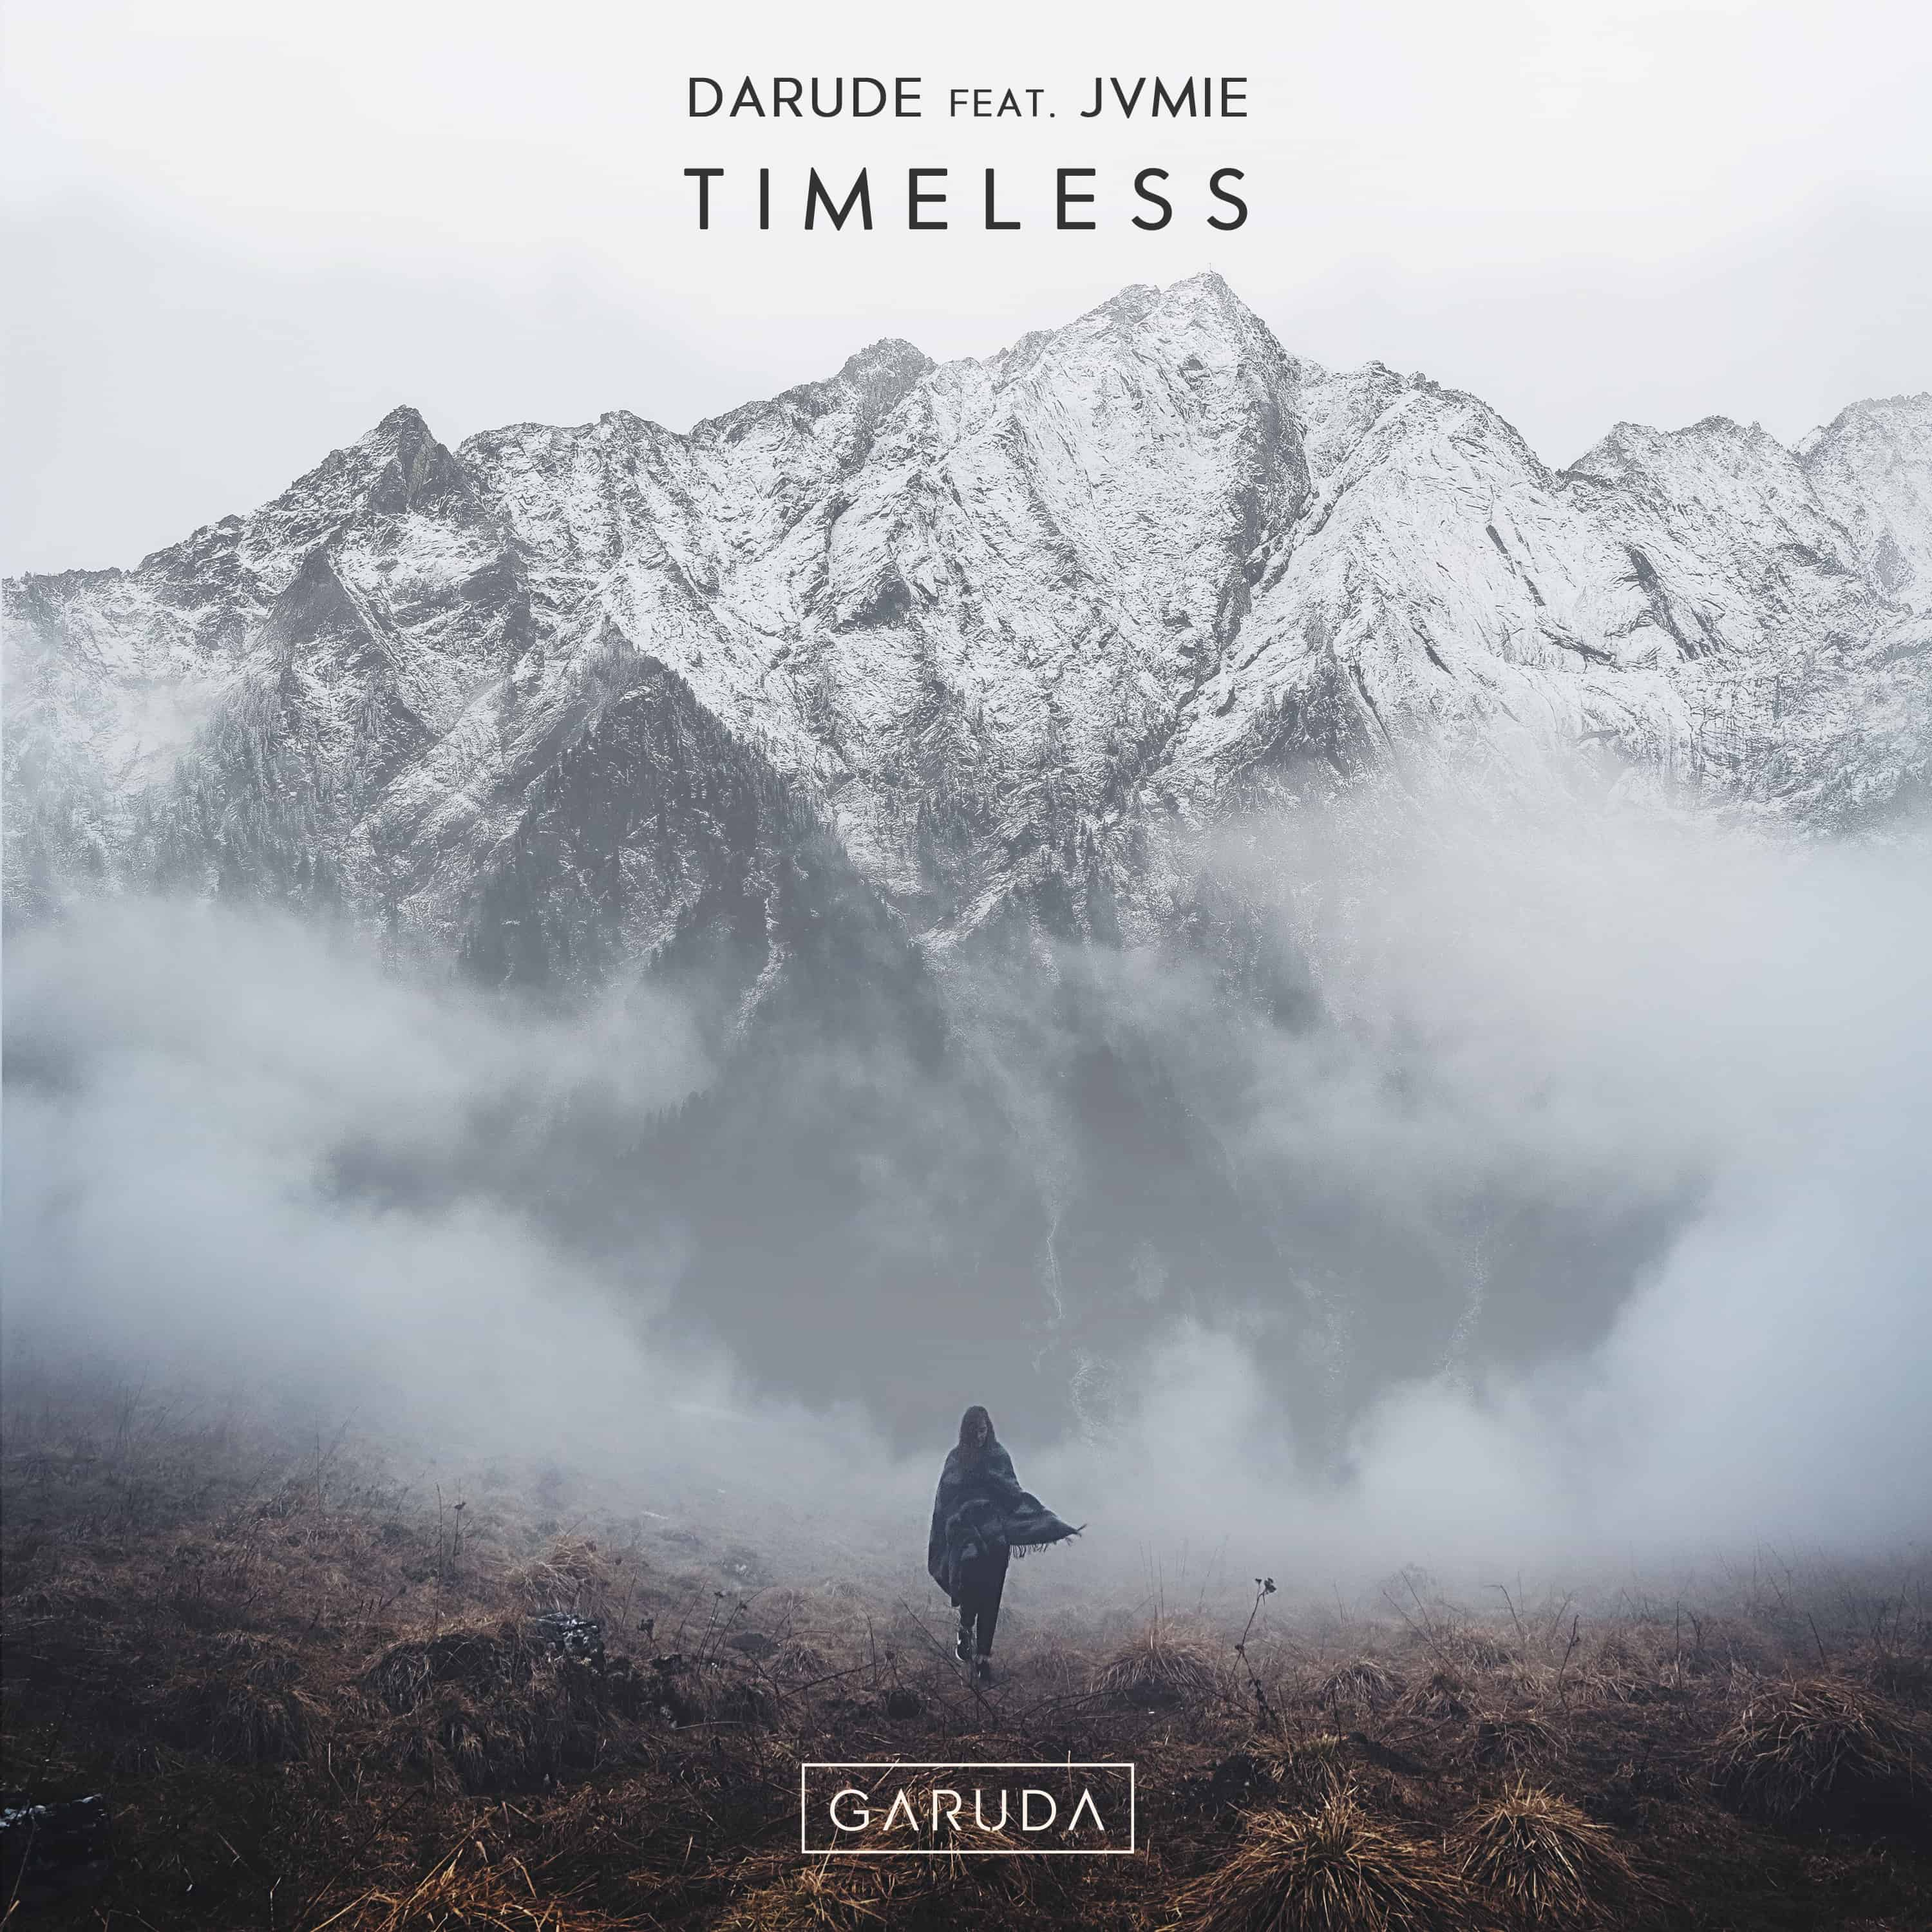 Darude & JVMIE team up for 'Timeless' classic in the making